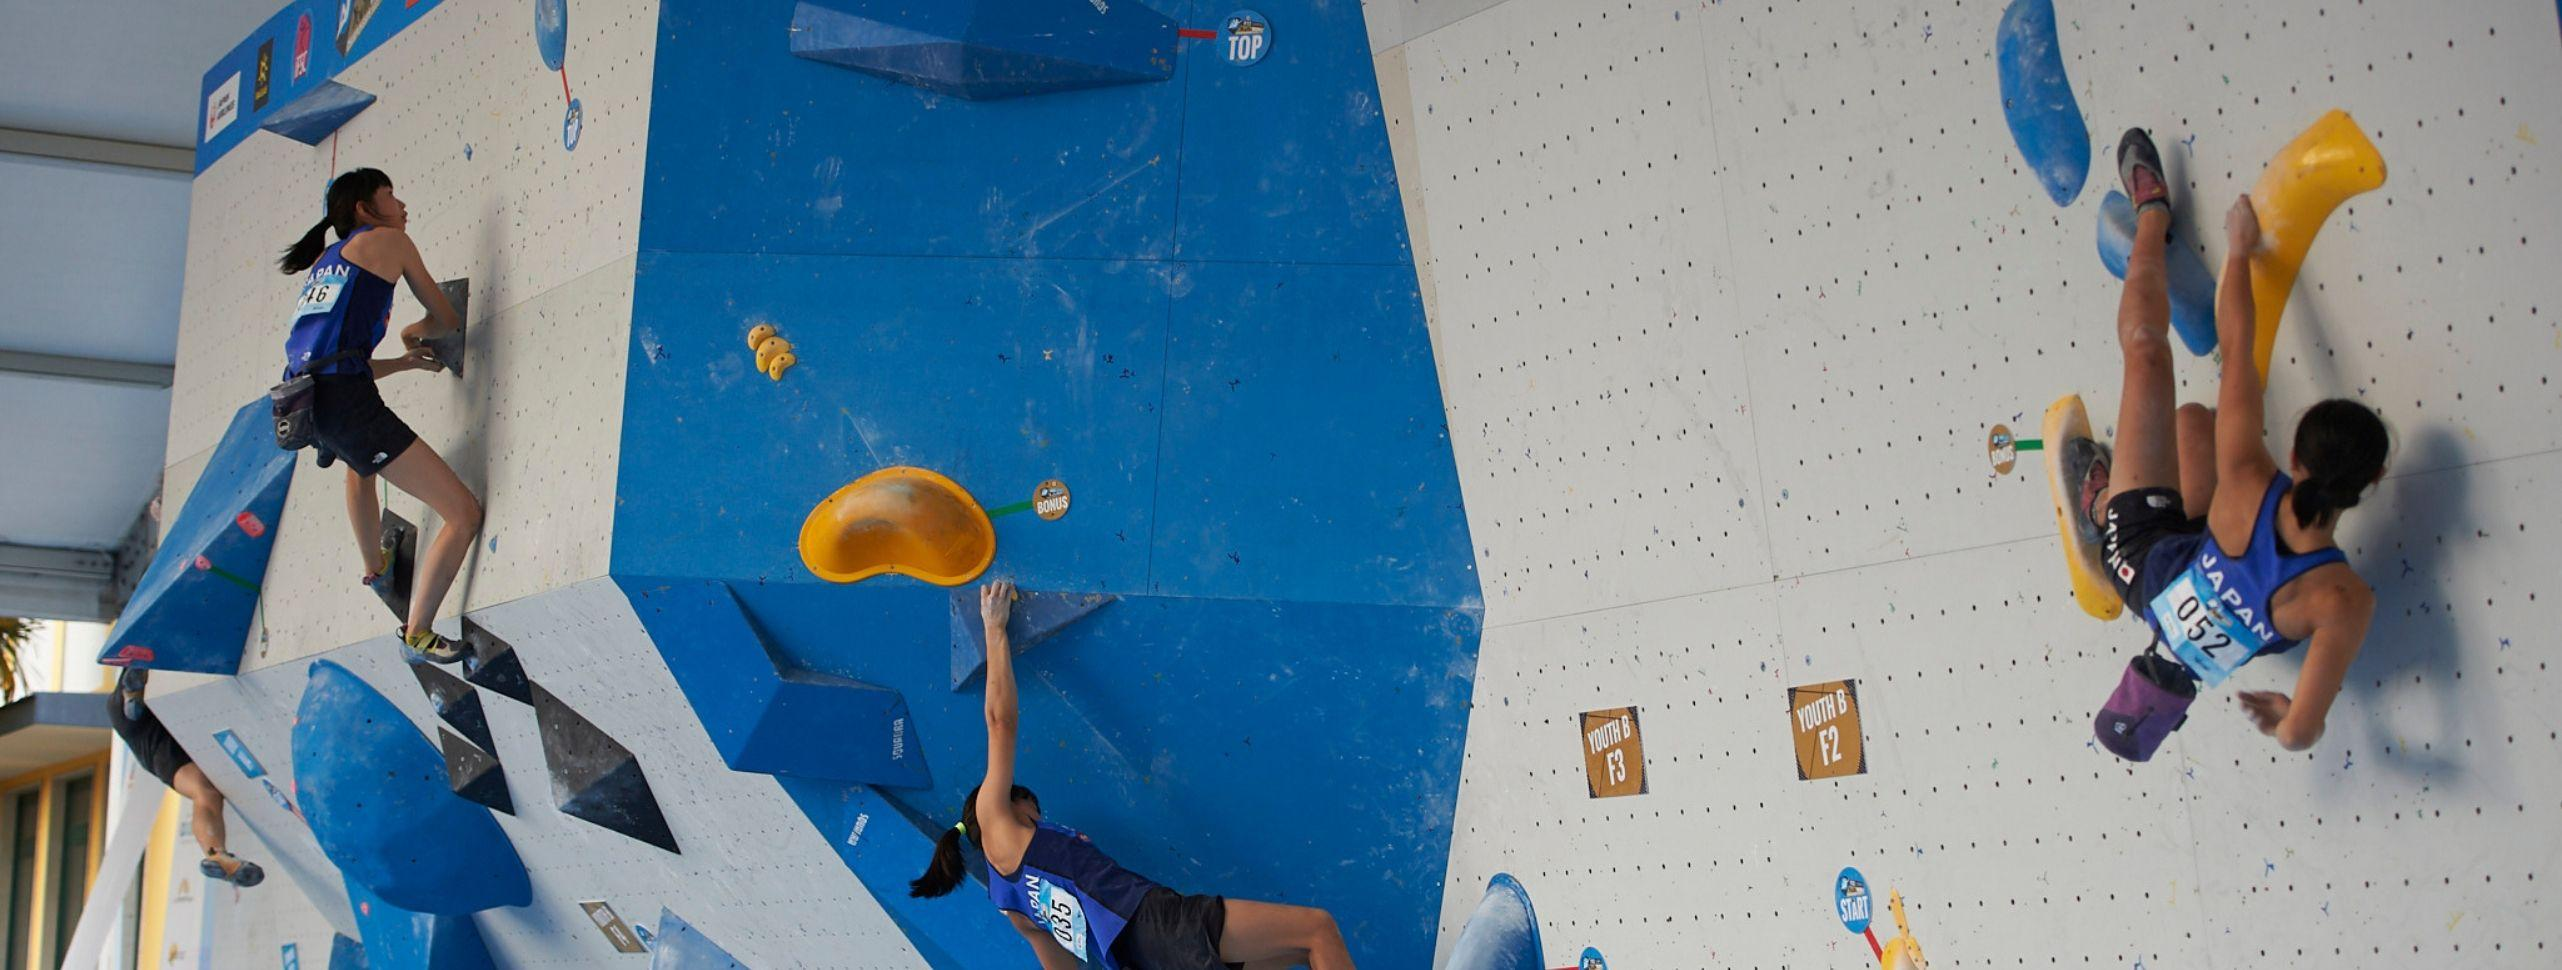 Japan Wins 8 Bouldering Medals, Wins for France, Italy and Thailand